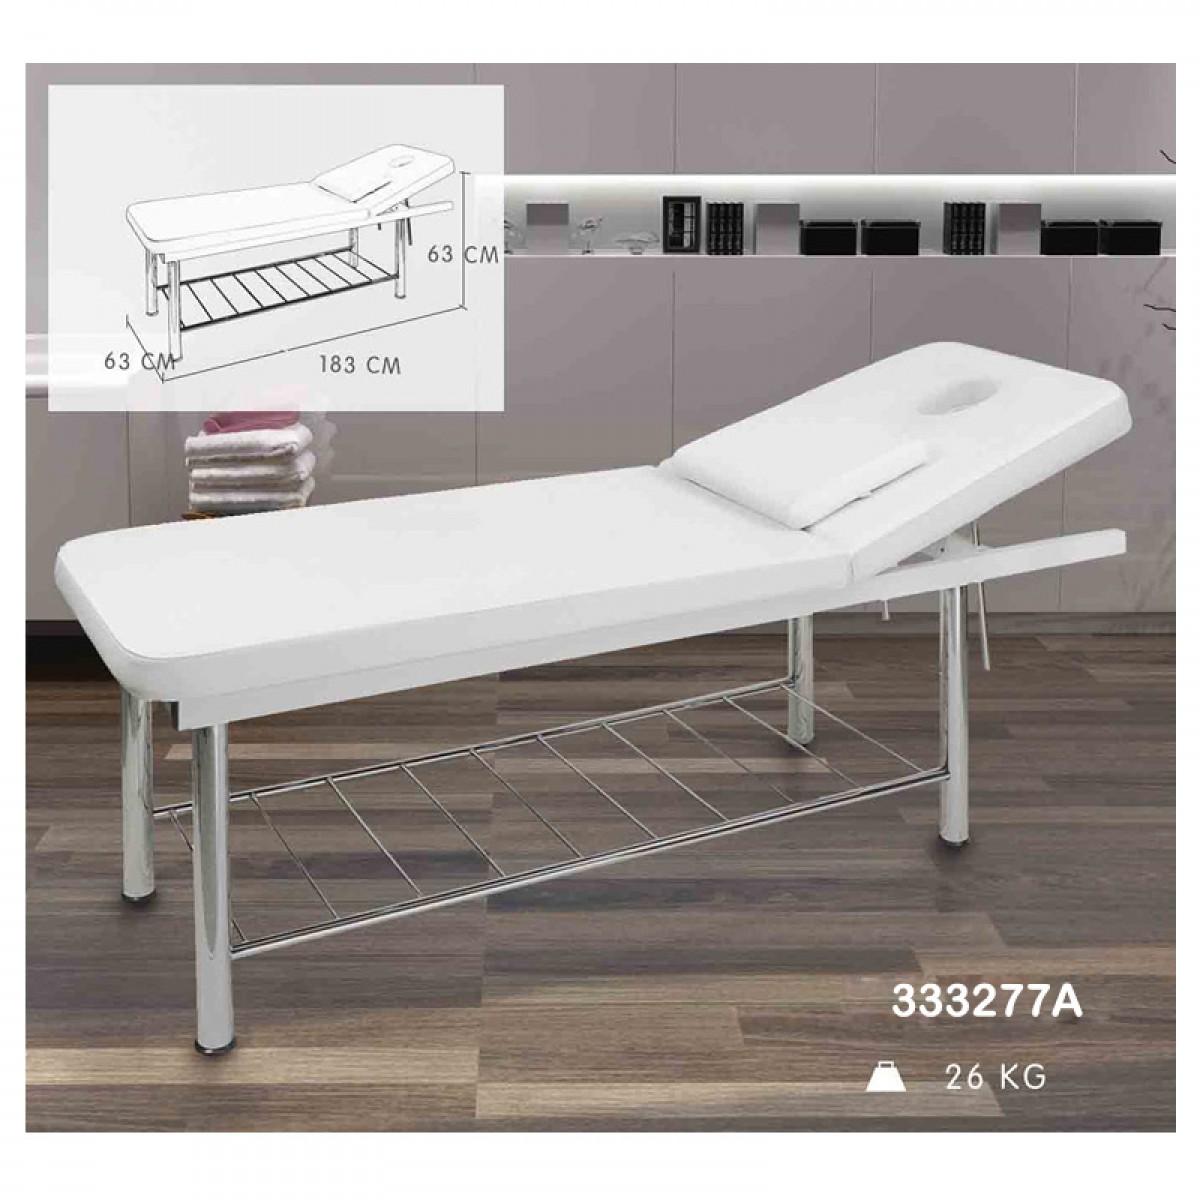 China High-end adustable acupuncture cosmetology bed body massage table with factory price